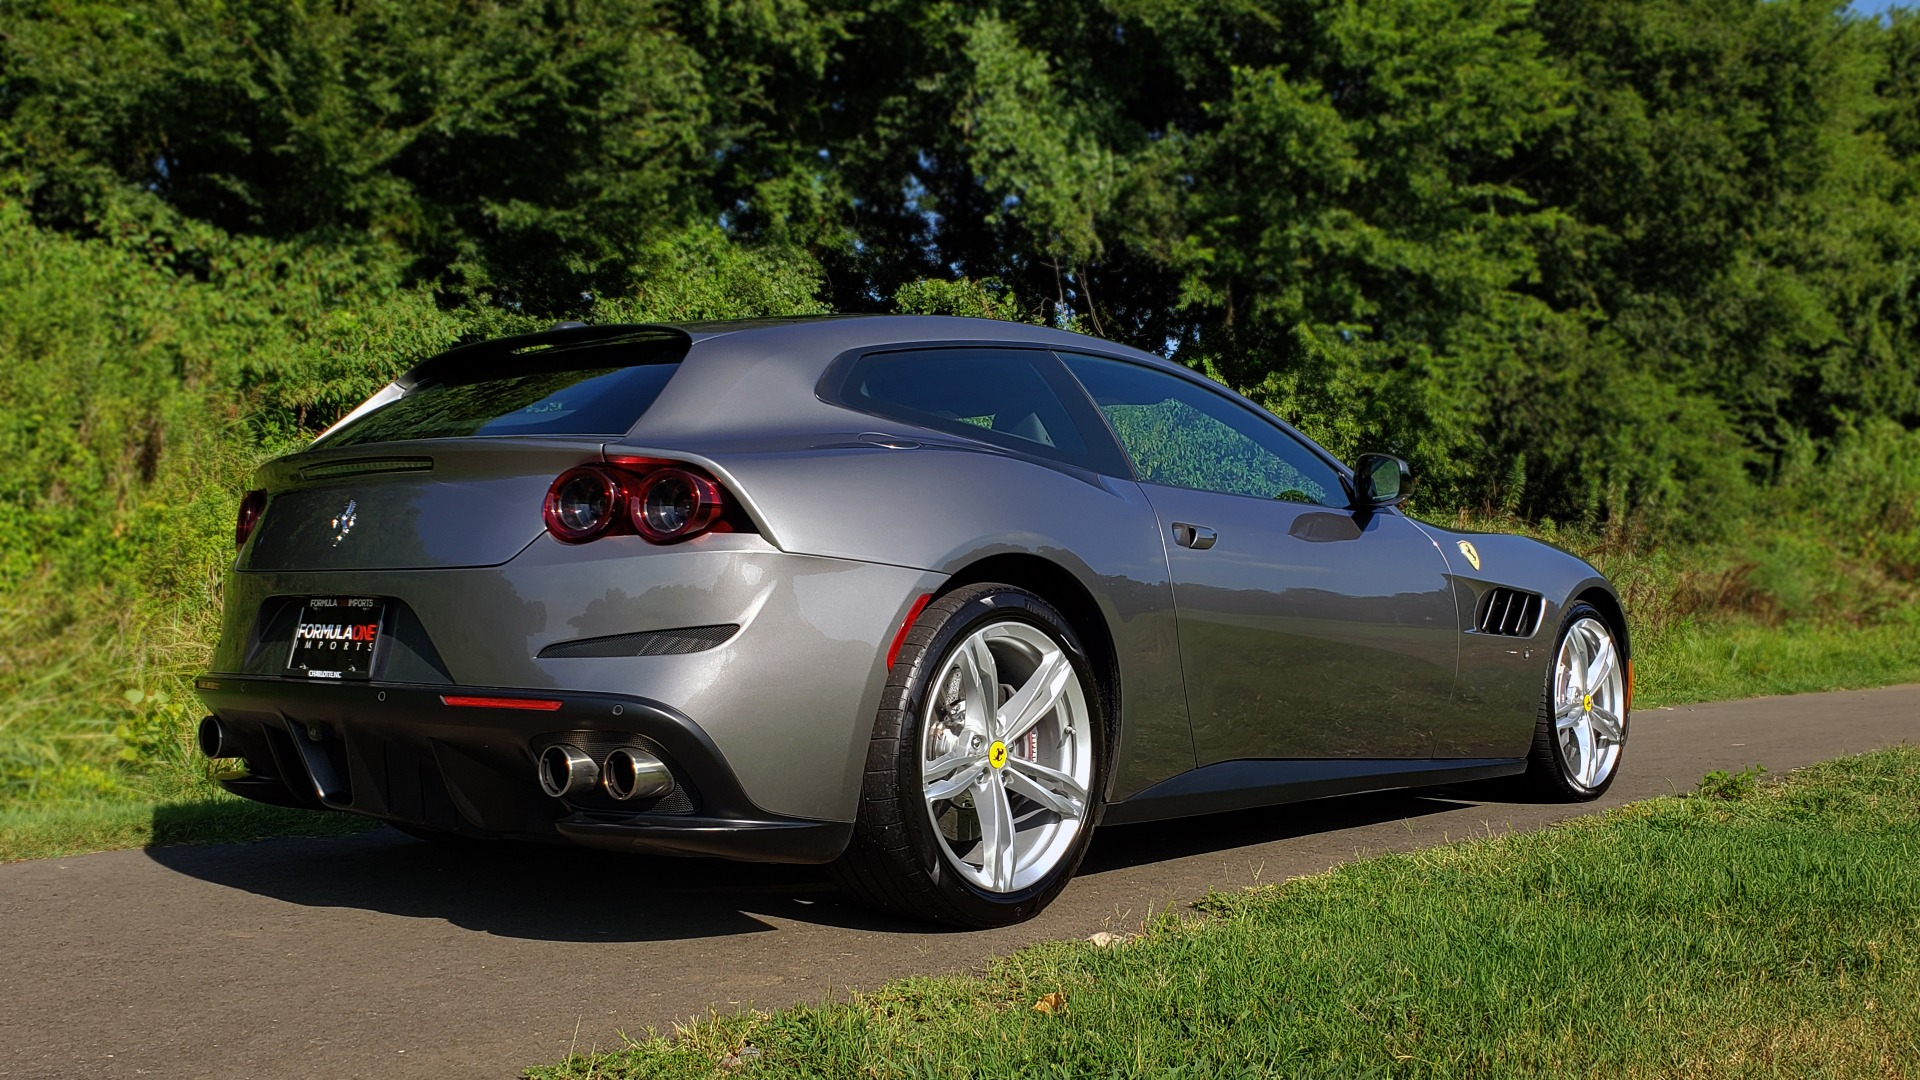 Used 2017 Ferrari GTC4 LUSSO AWD / PANO-ROOF / APPLE CAR PLAY / SUSP LIFT / JBL SOUND for sale $188,999 at Formula Imports in Charlotte NC 28227 8